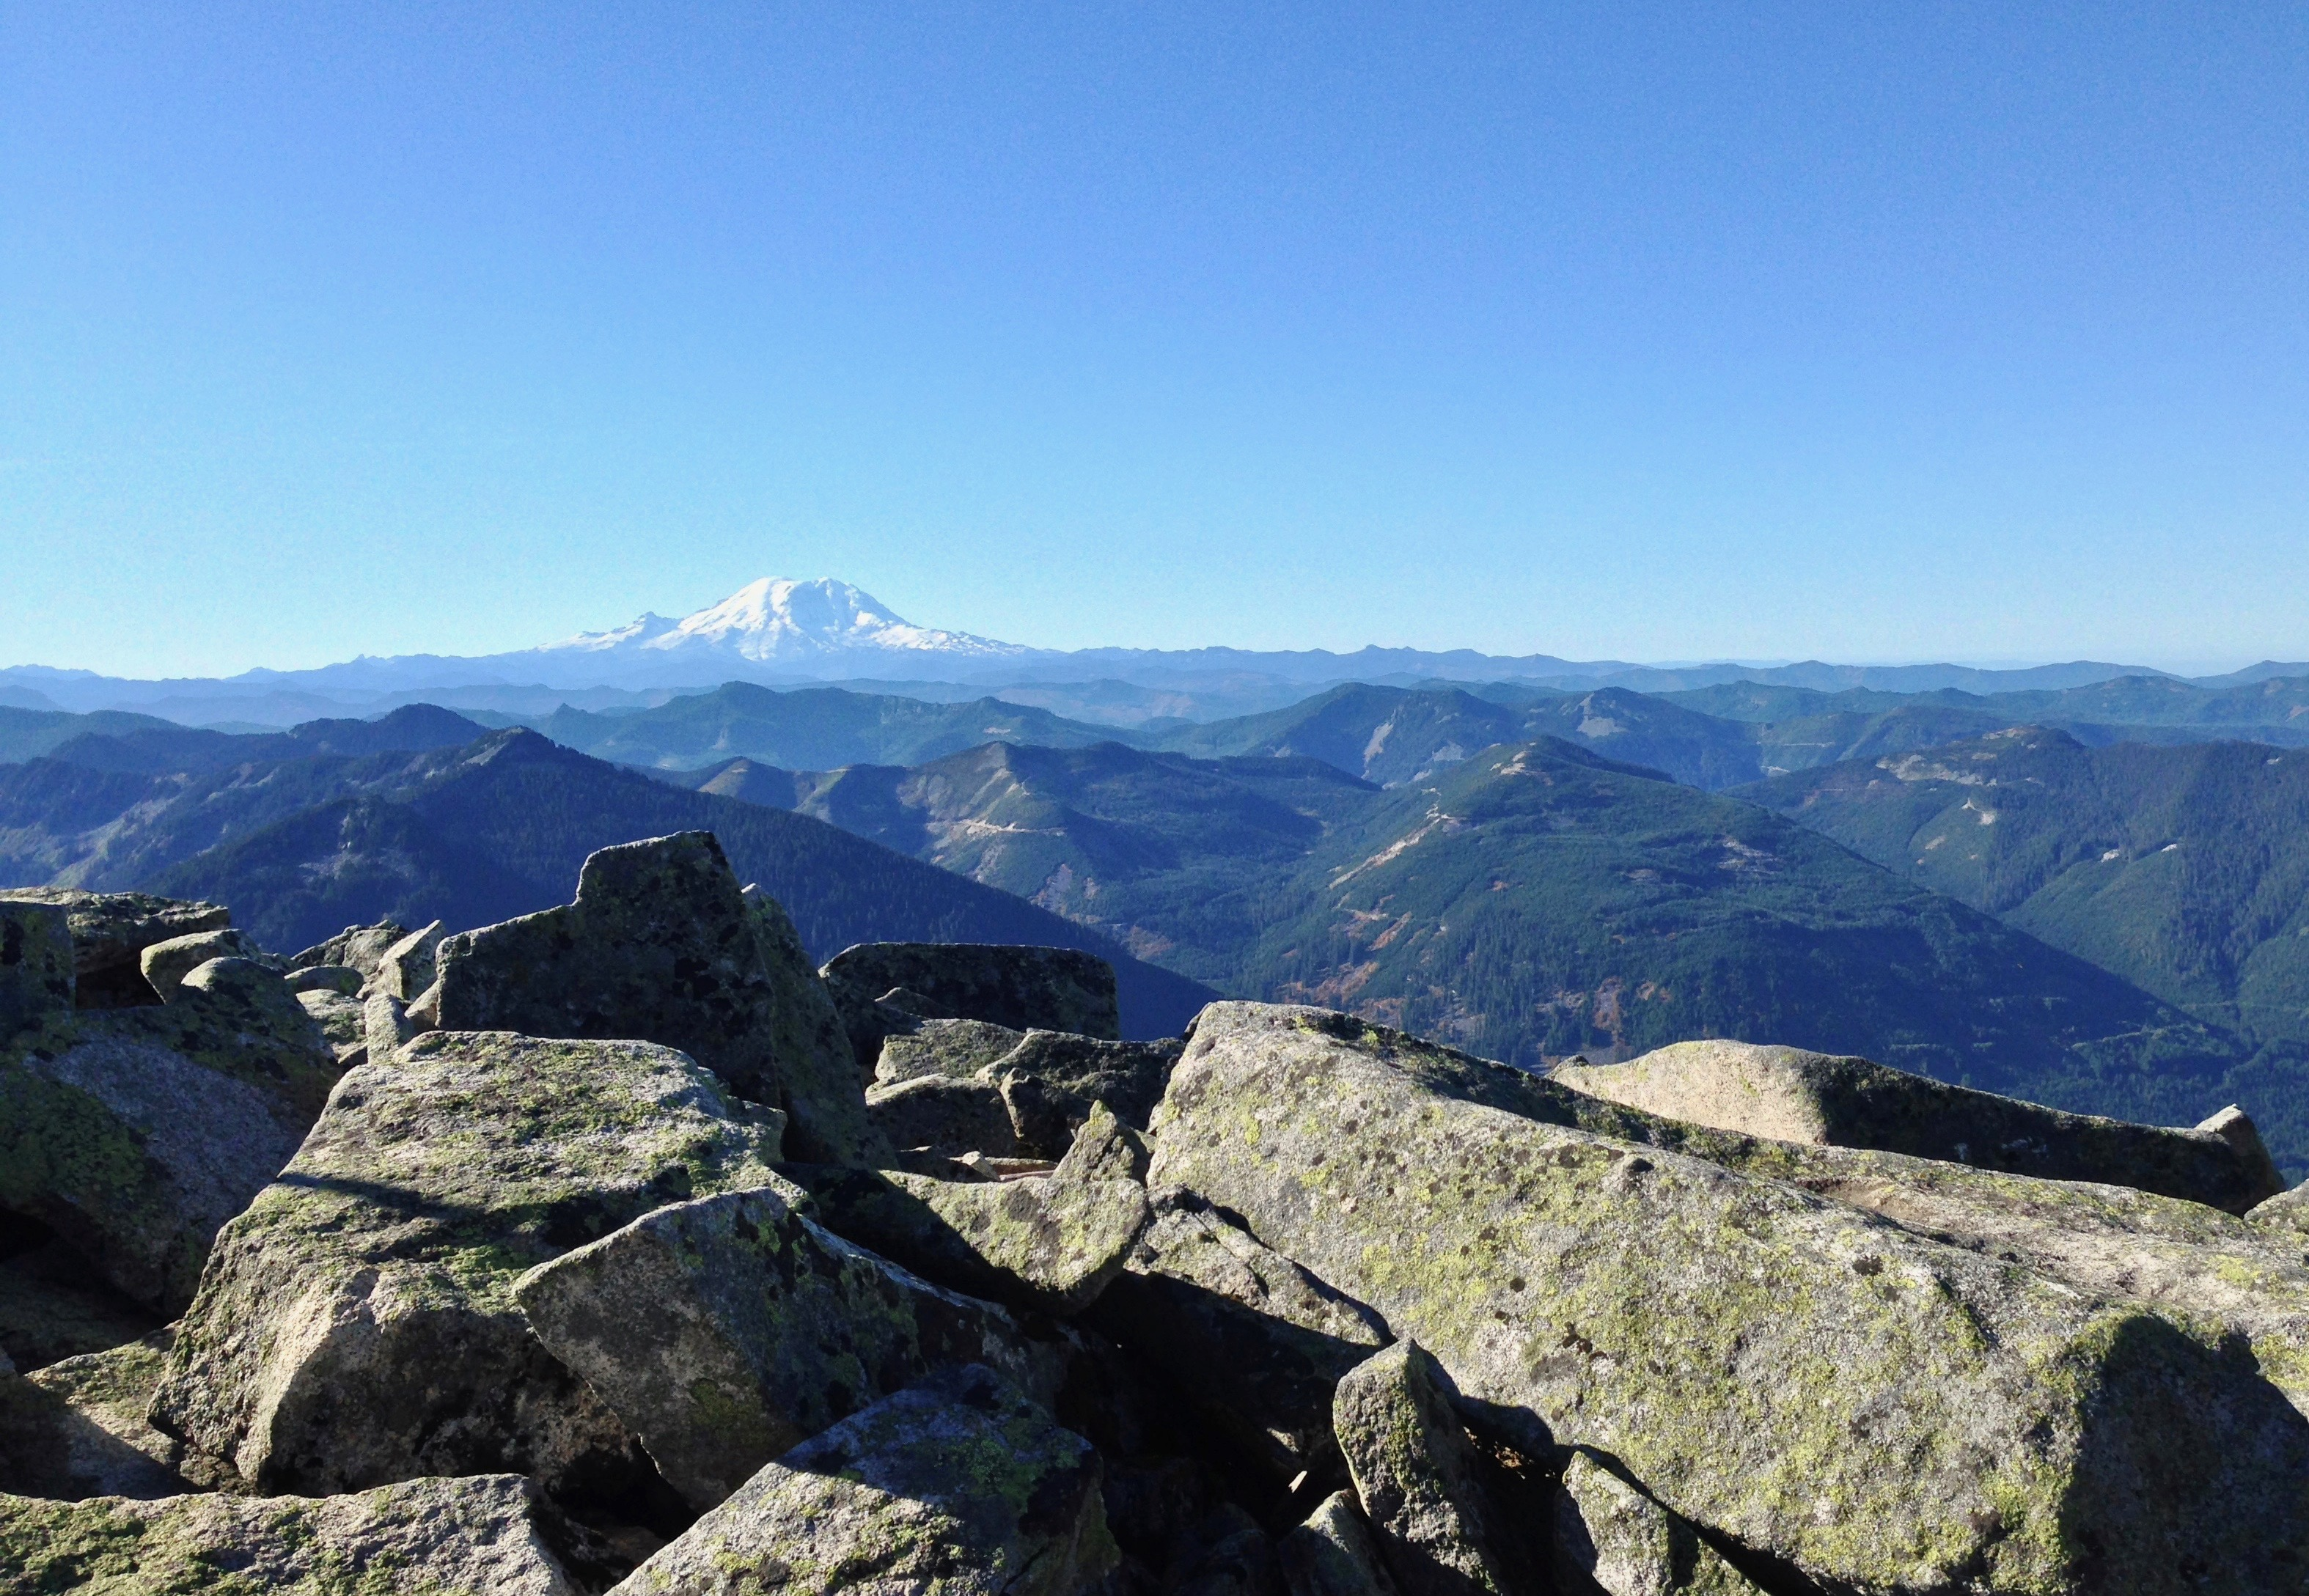 From Granite Mountain's jumbled stones, the view skims a crinkled landscape topped by Mt. Rainier on the southern horizon. Granite Mountain Trail, October 05, 2014.